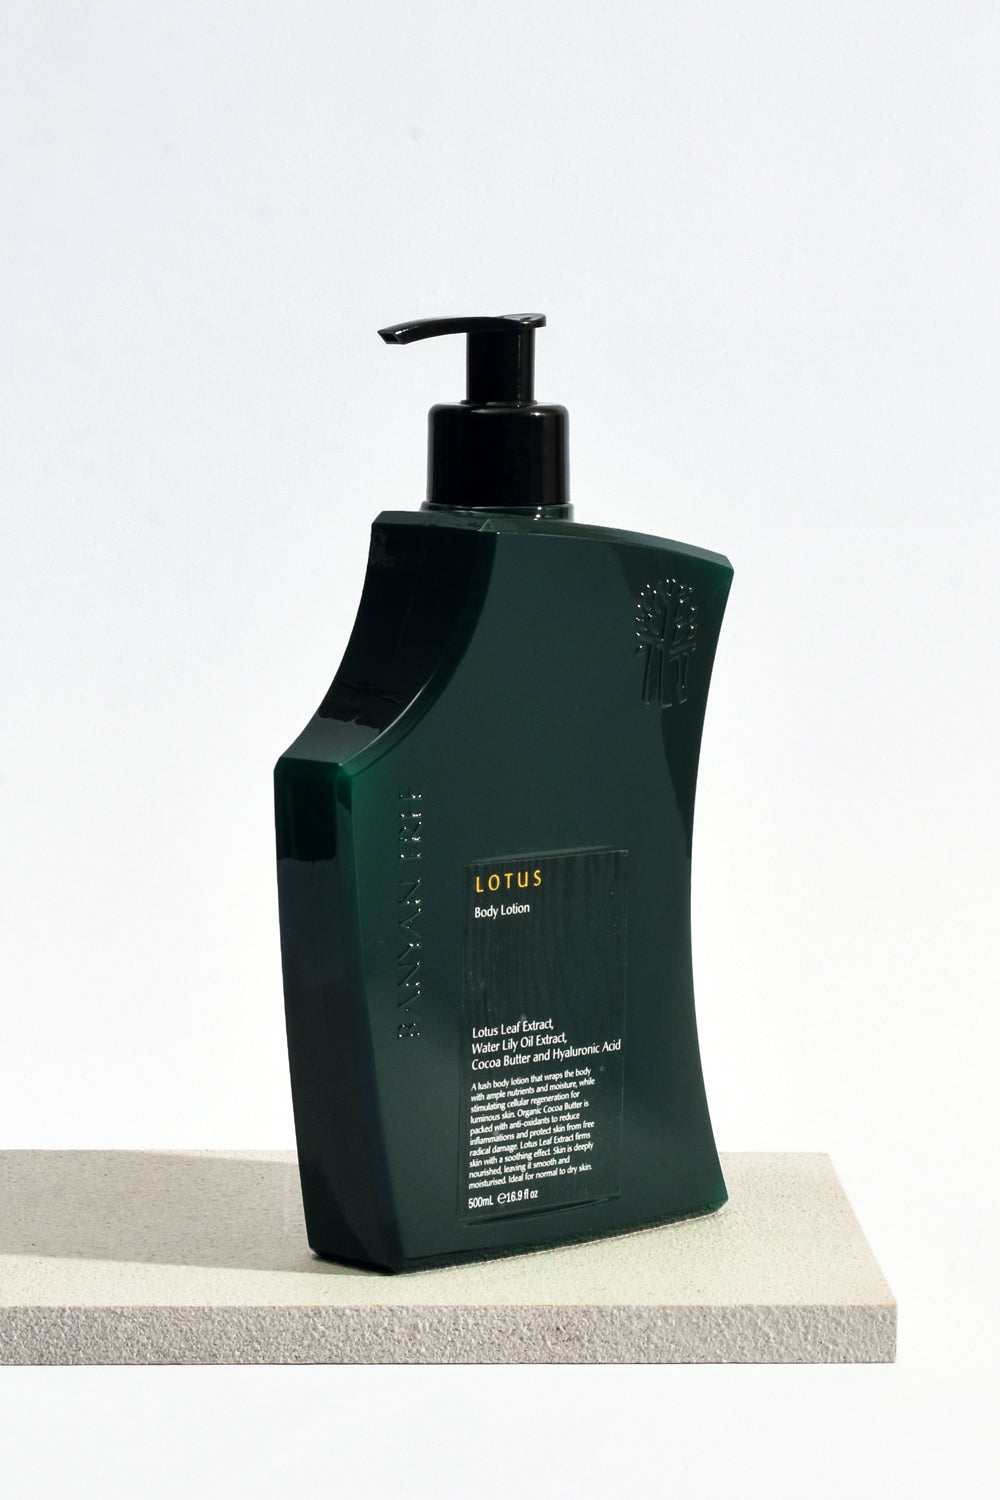 Lotus Body Lotion - Banyan Tree Gallery